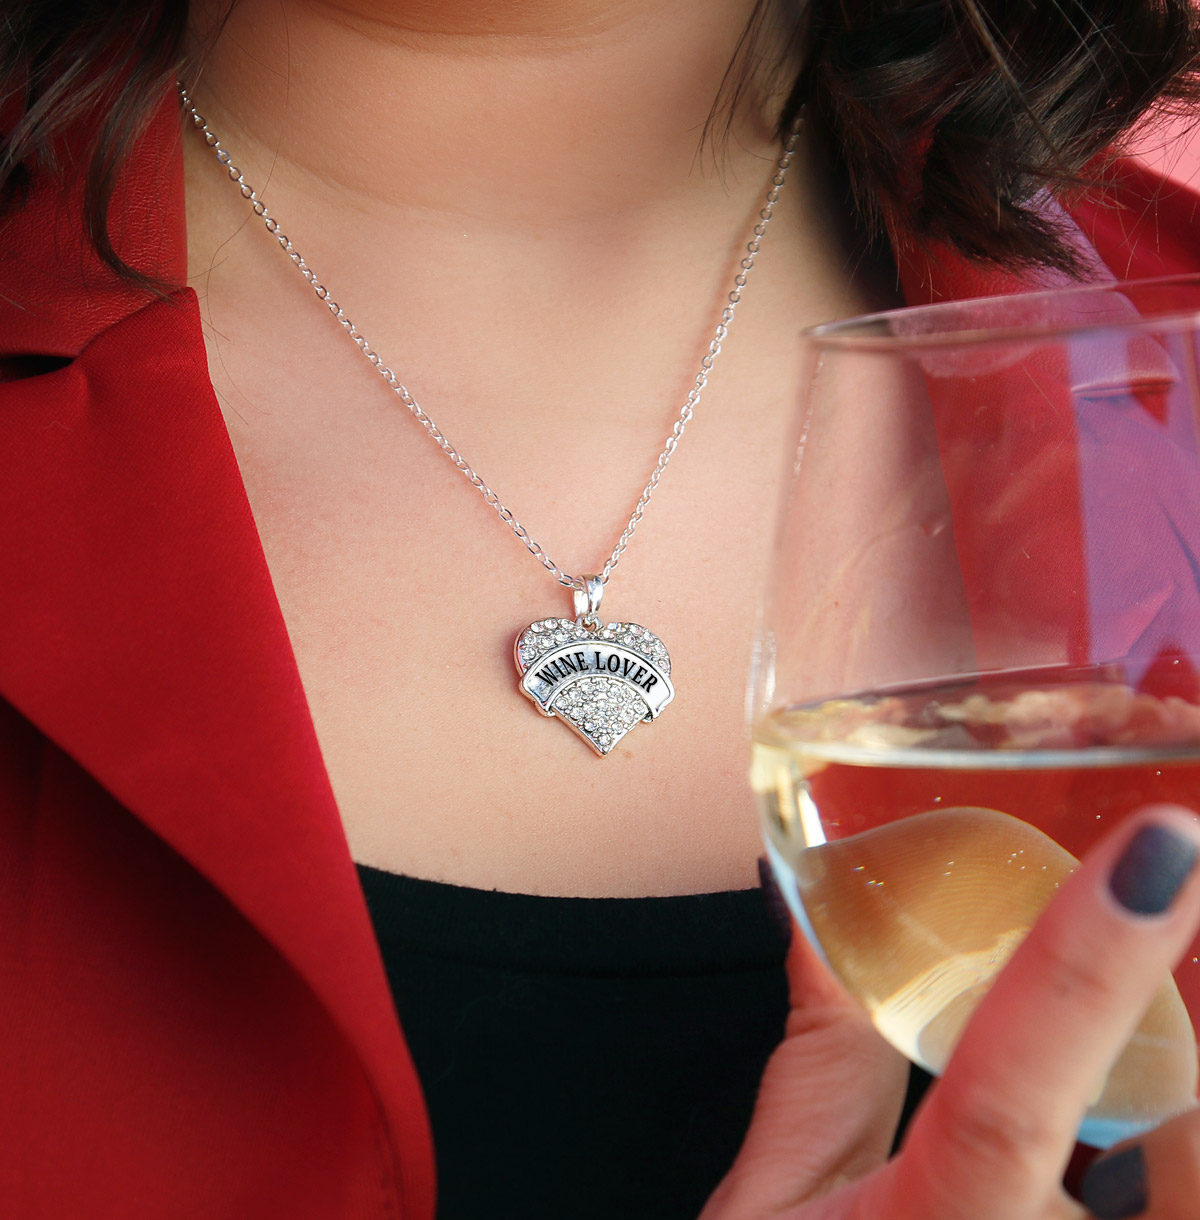 silver, wine lover, wine, heart, necklace